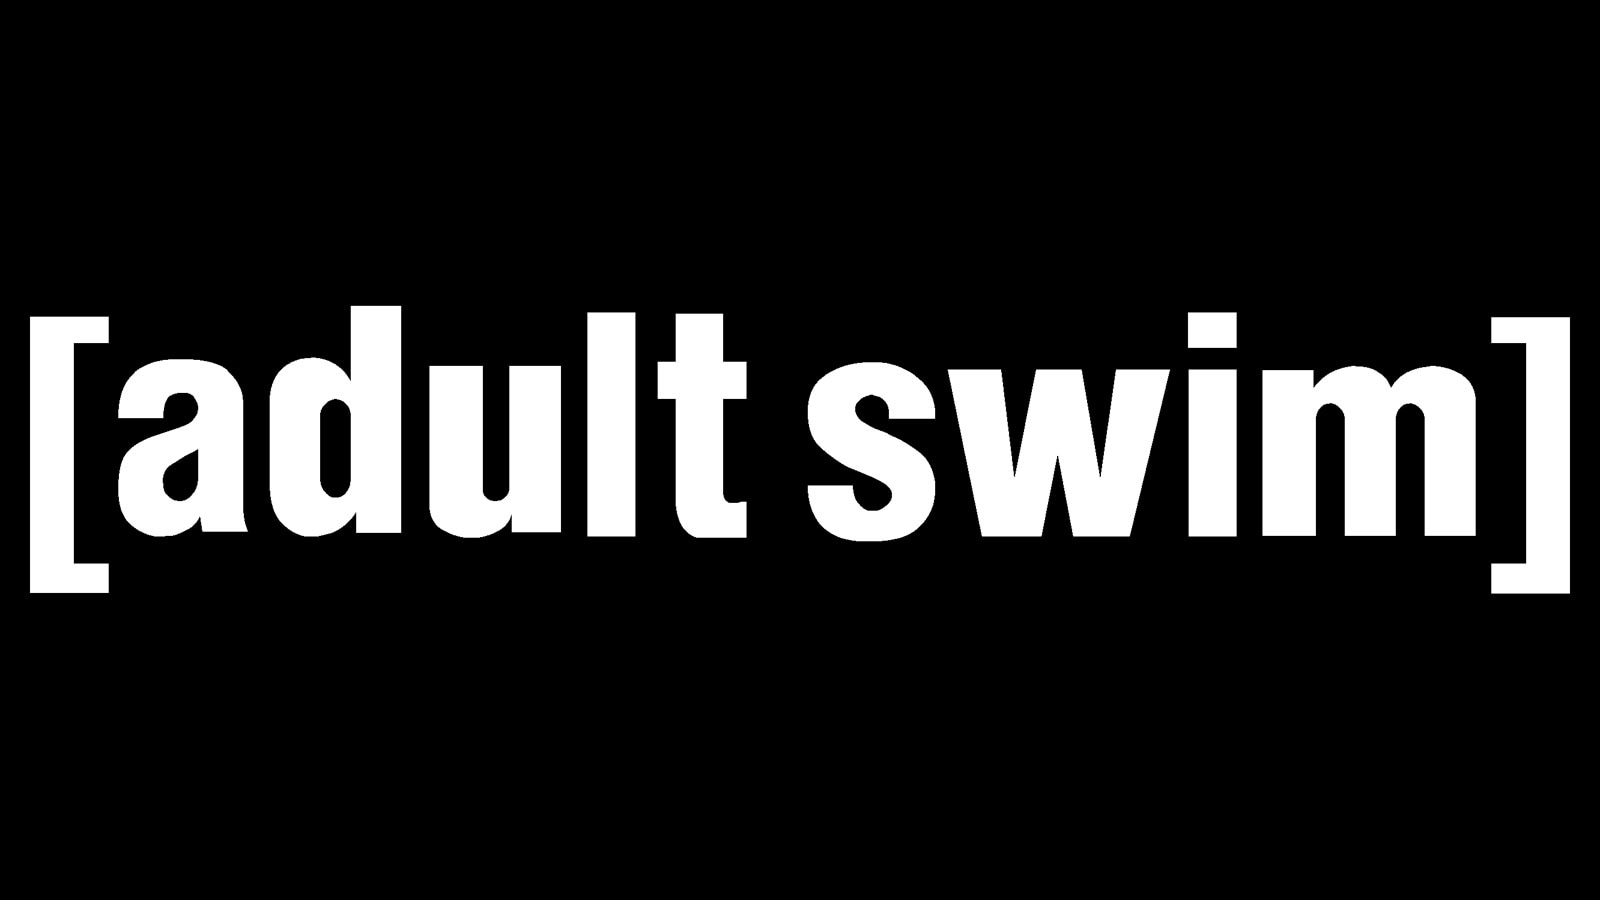 adultswim 1 - Adult Swim Announces Robot Chicken: The Walking Dead Special